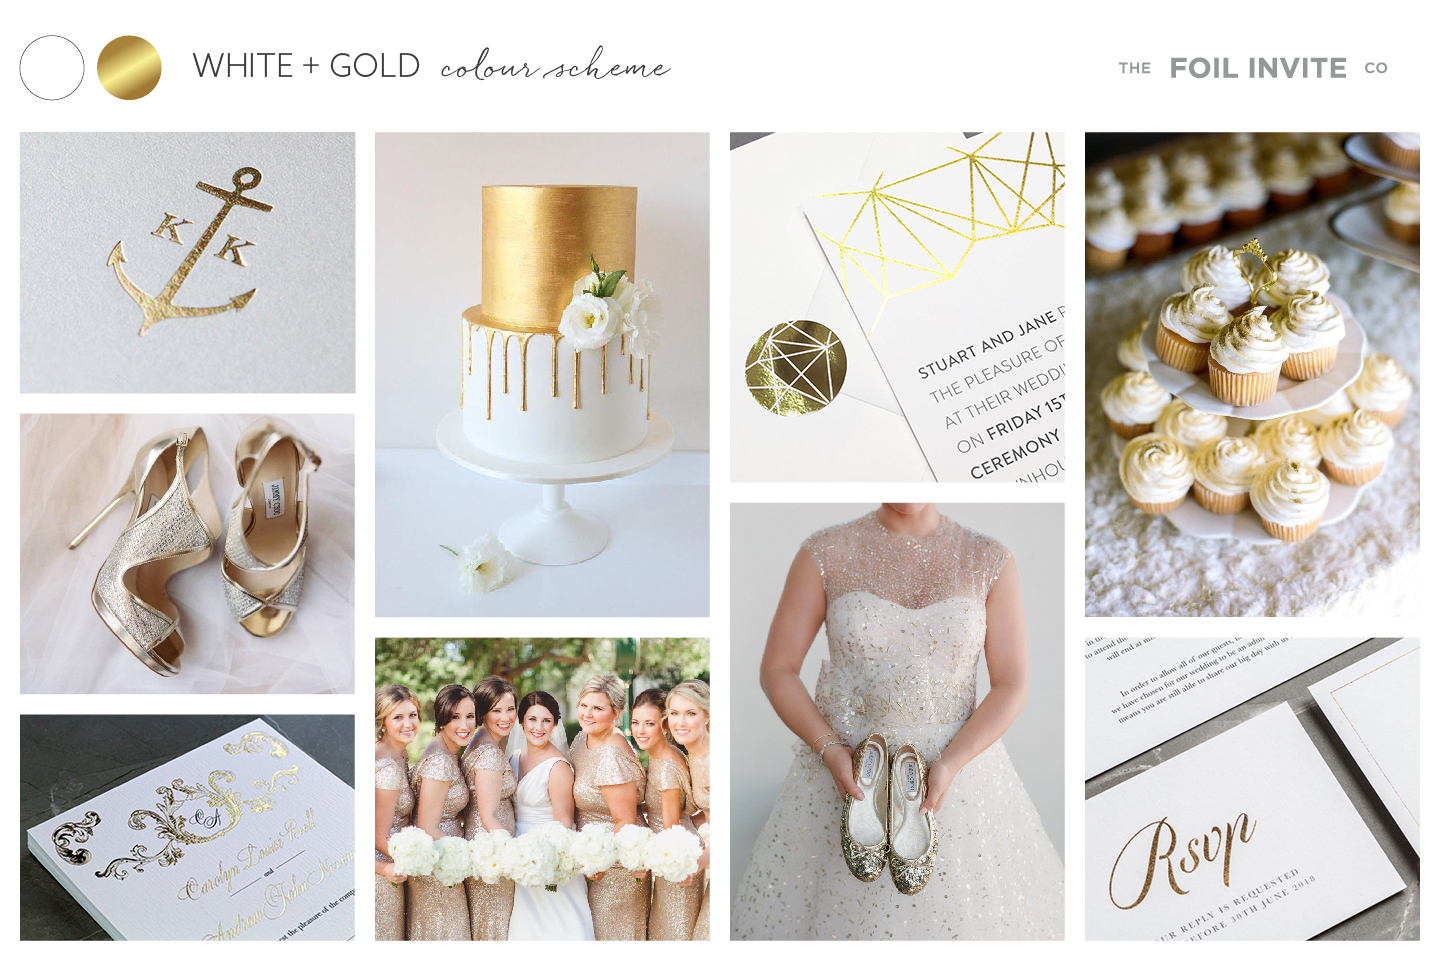 White and Gold Wedding Stationery Blog | White and Gold Wedding Invitations by The Foil Invite Company